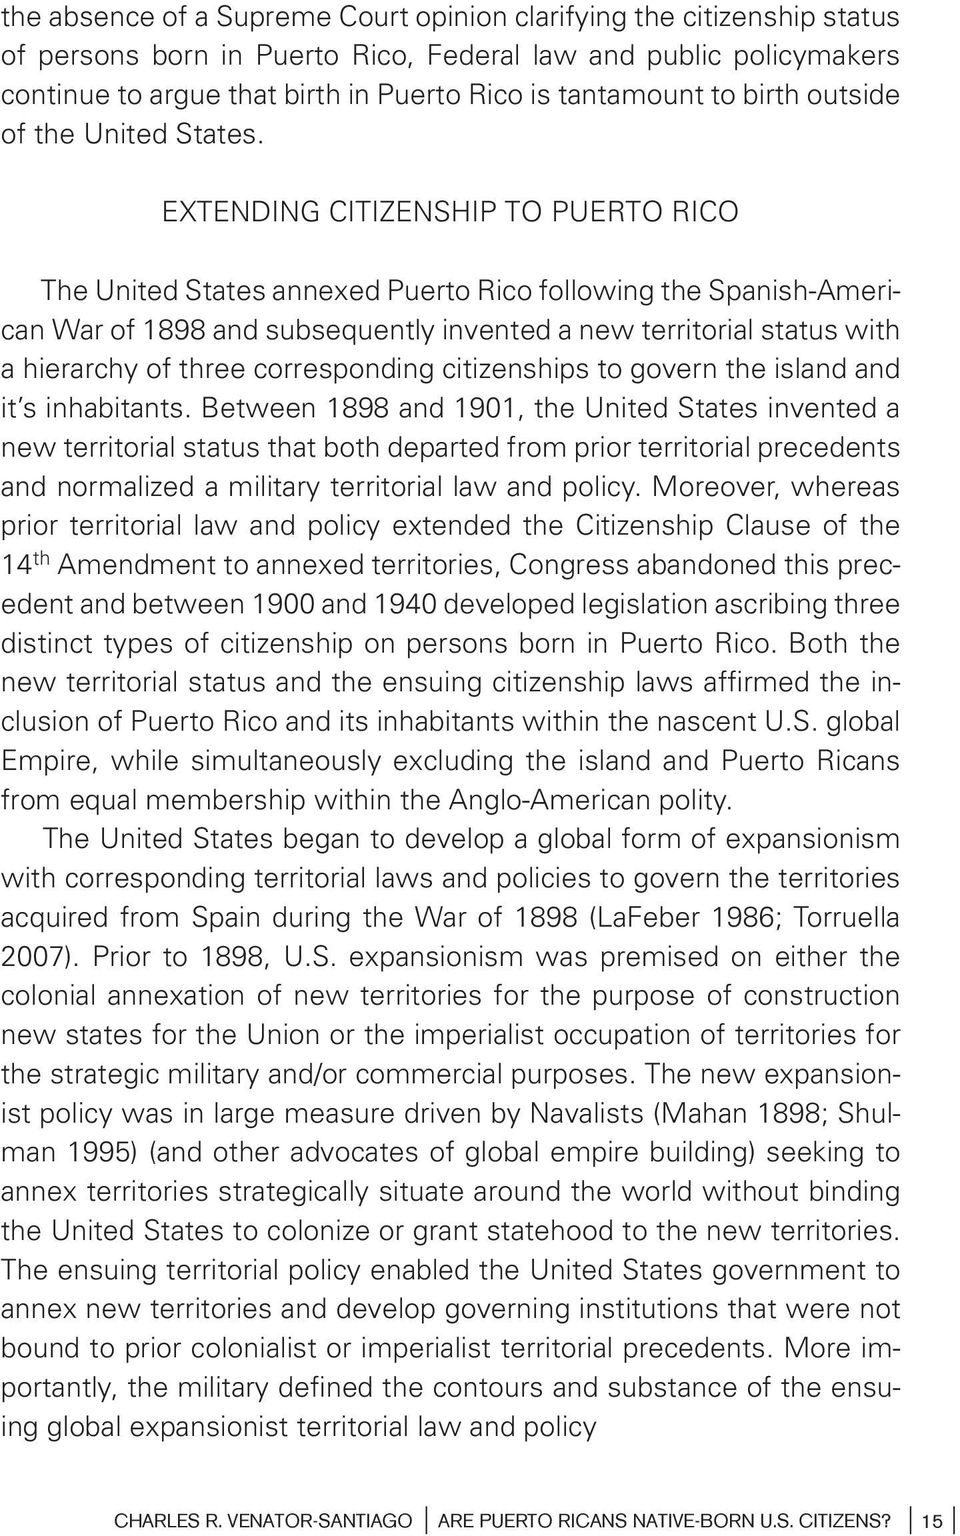 EXTENDING CITIZENSHIP TO PUERTO RICO The United States annexed Puerto Rico following the Spanish-American War of 1898 and subsequently invented a new territorial status with a hierarchy of three